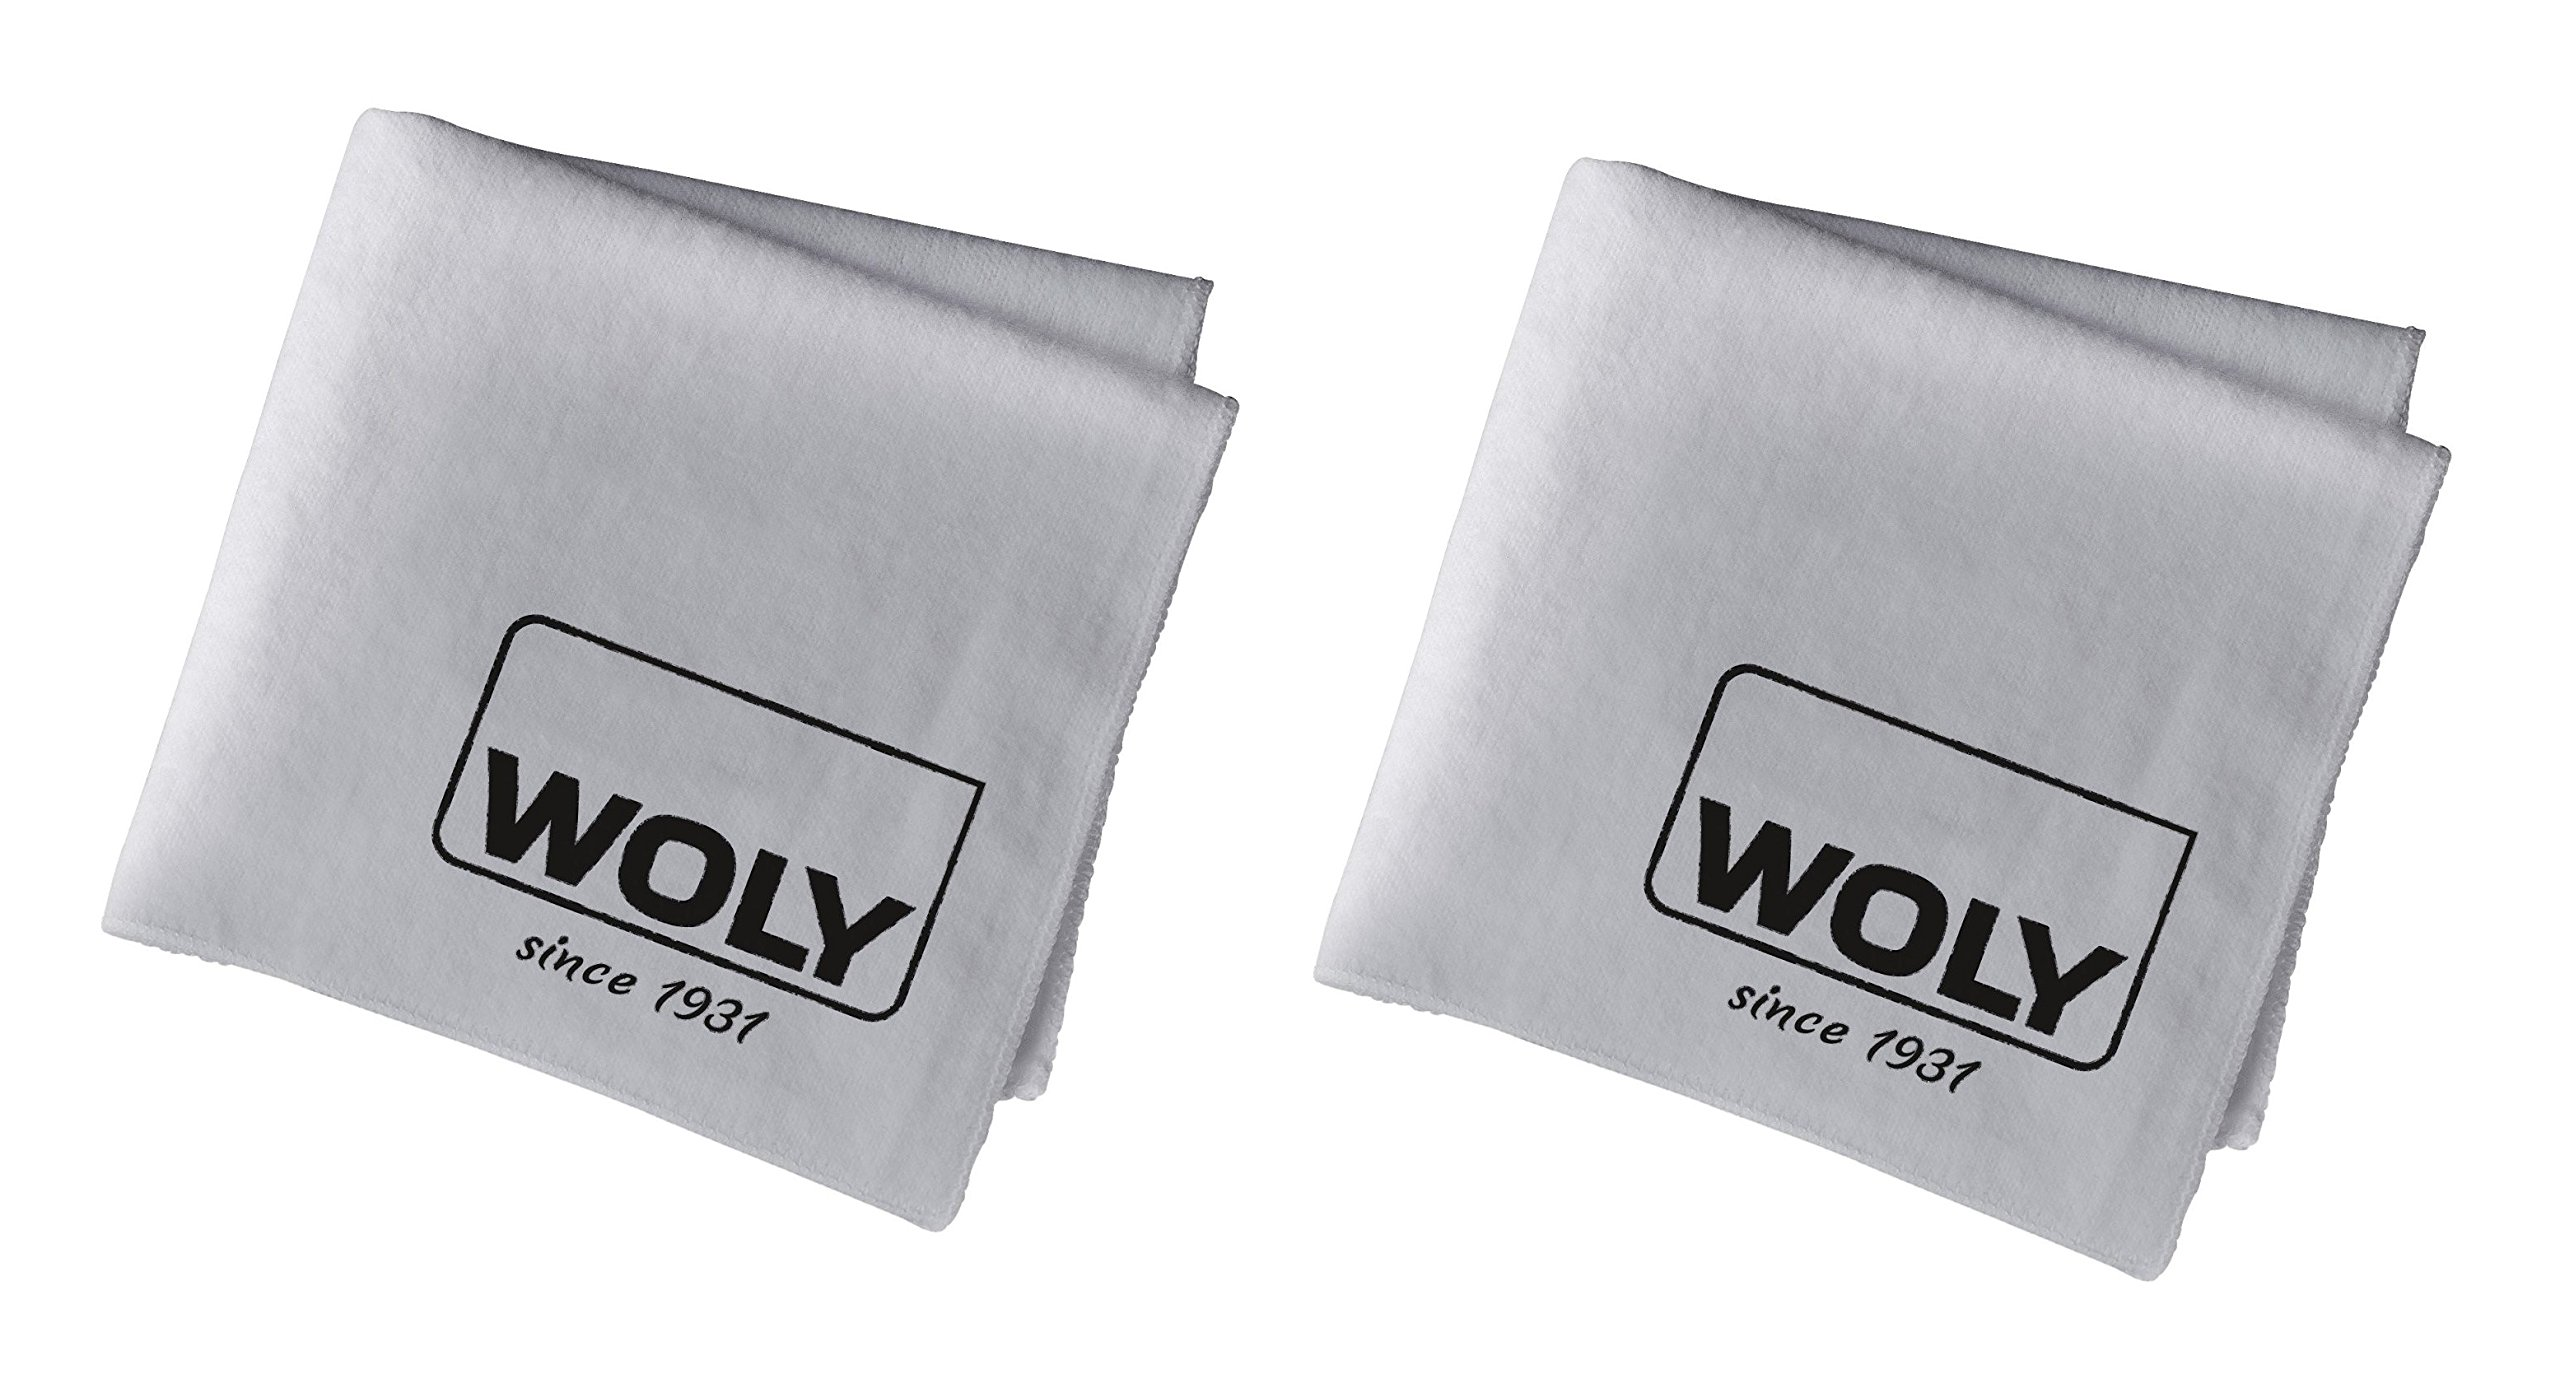 2 Woly Polishing Cloth. Professional Shine Cloth for Polishing Your Shoes, Boots, Handbags, Clothes for High-gloss Shine - Pack of 2.